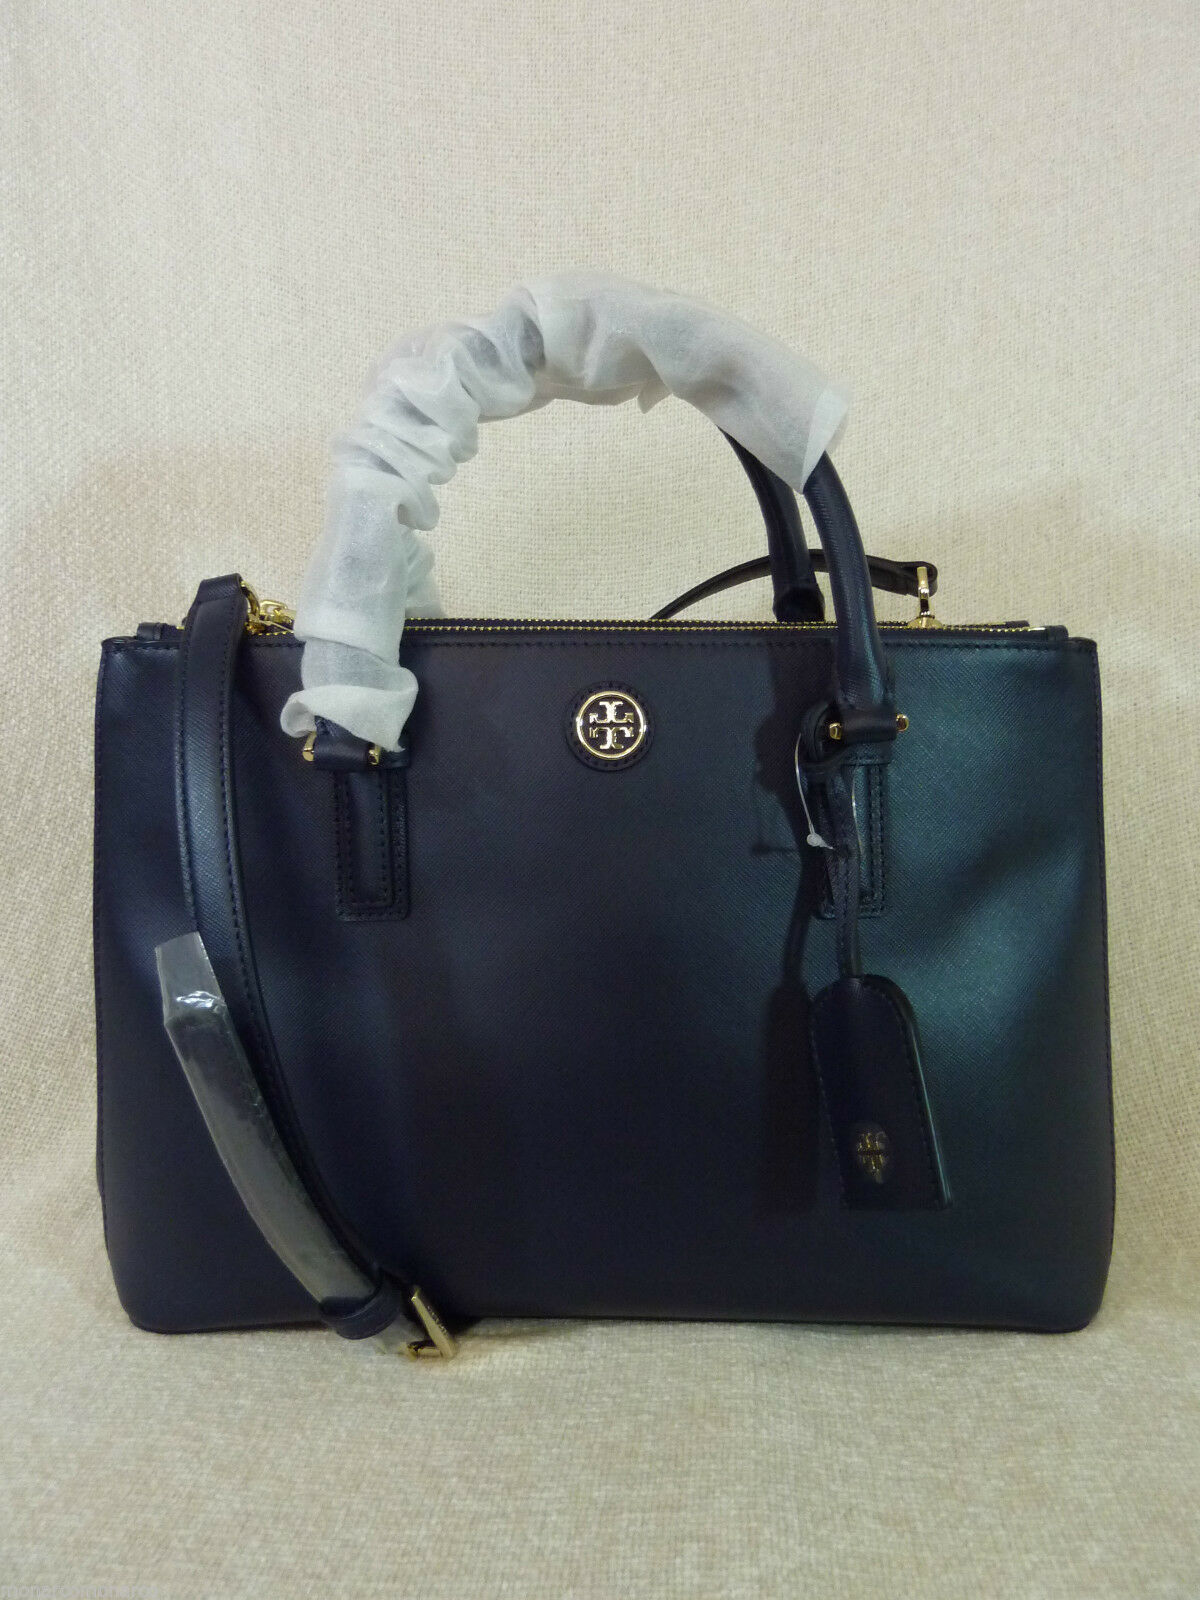 Tory Burch Navy Blue Saffiano Leather Robinson Mini Double-Zip Tote